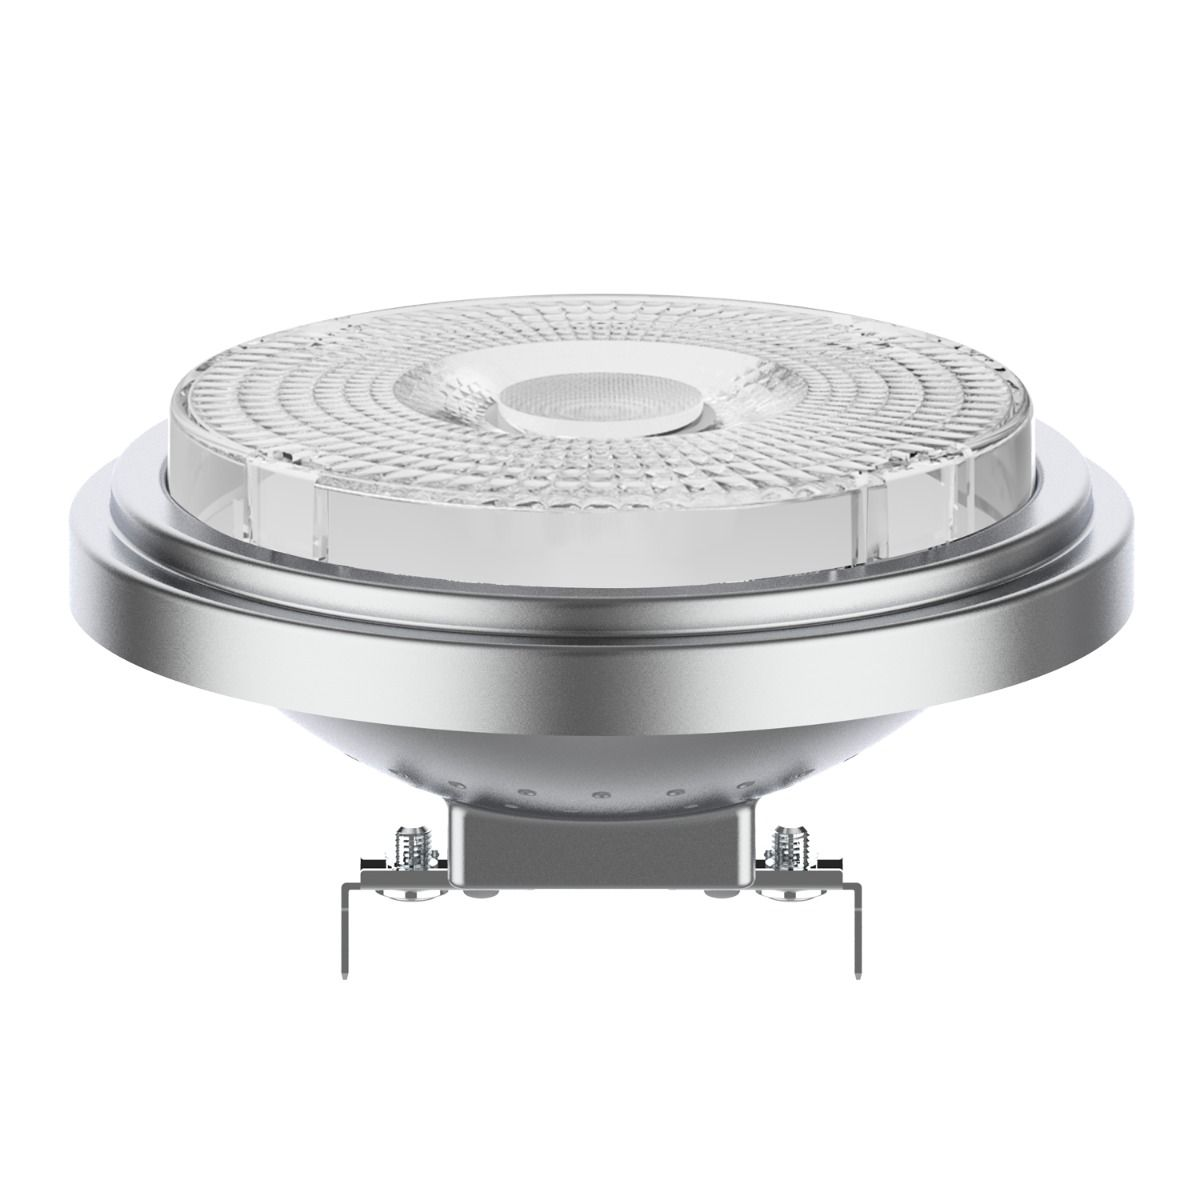 Noxion Lucent LED Spot AR111 G53 12V 7.3W 930 40D   Dimmable - Highest Colour Rendering - Replacer for 50W